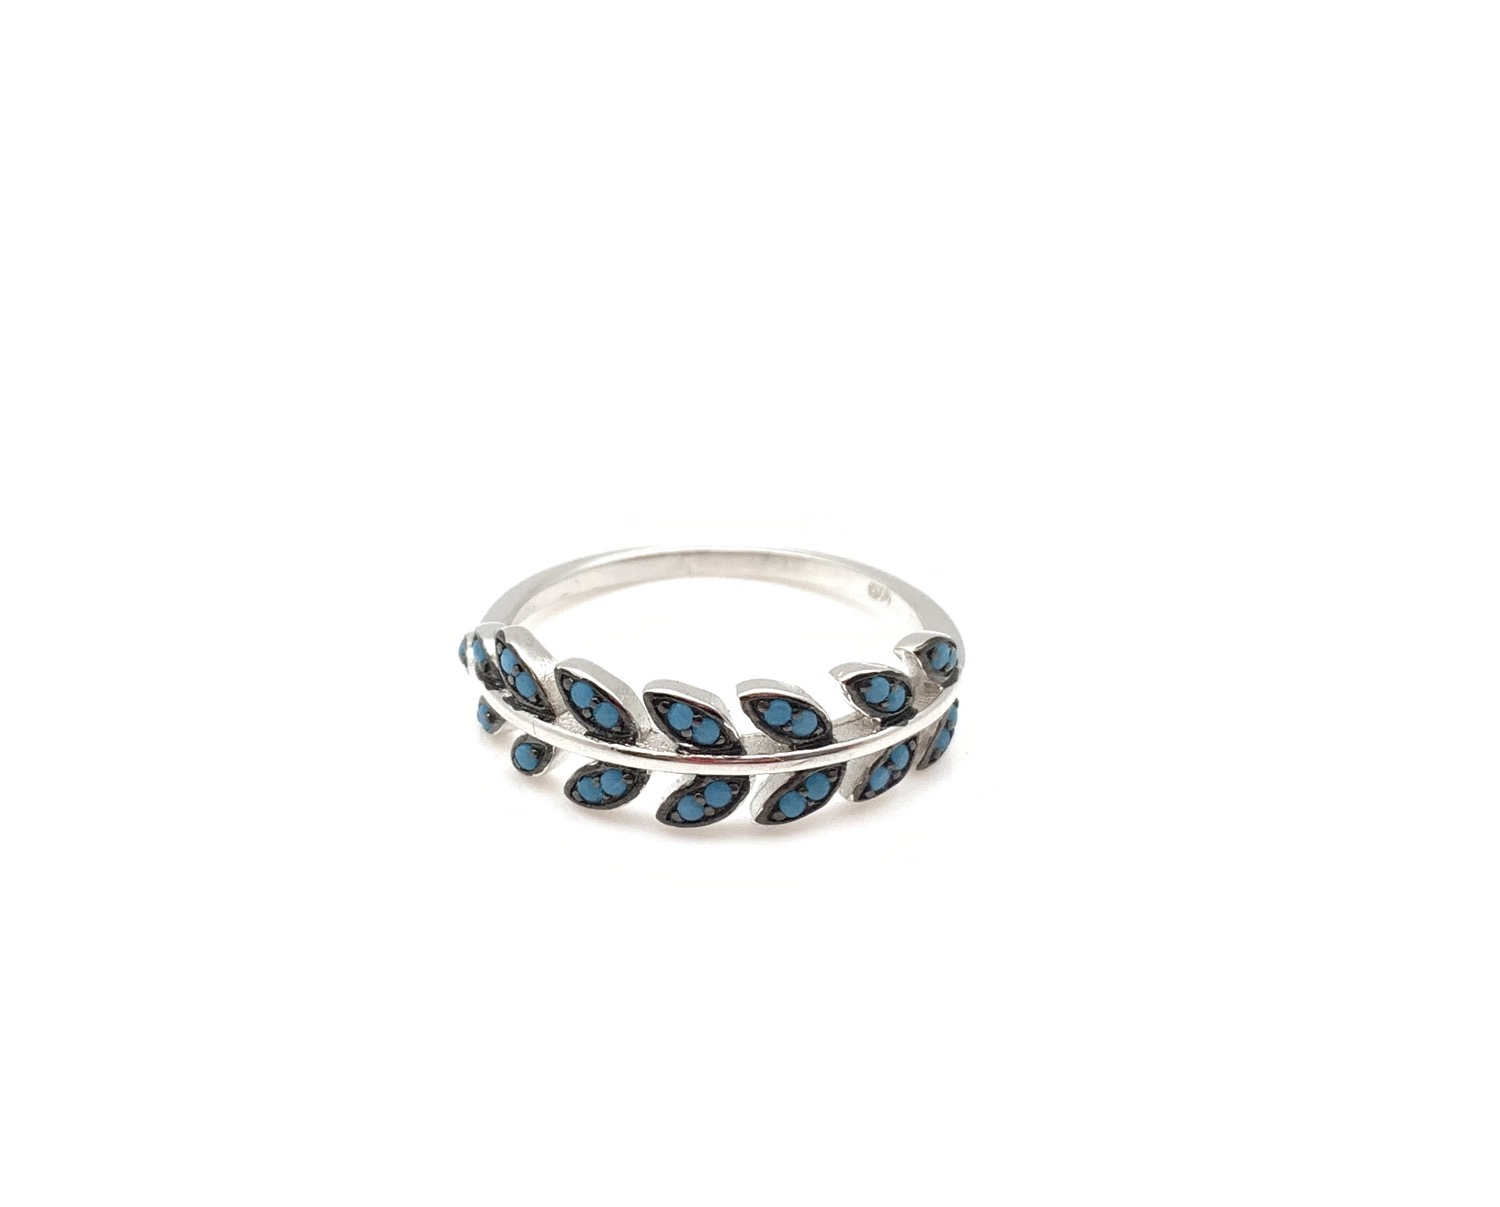 Thumbnail: SR5 Micro Turquoise Sterling Silver Ring Size 5, 6, 7, 8, 9, 10